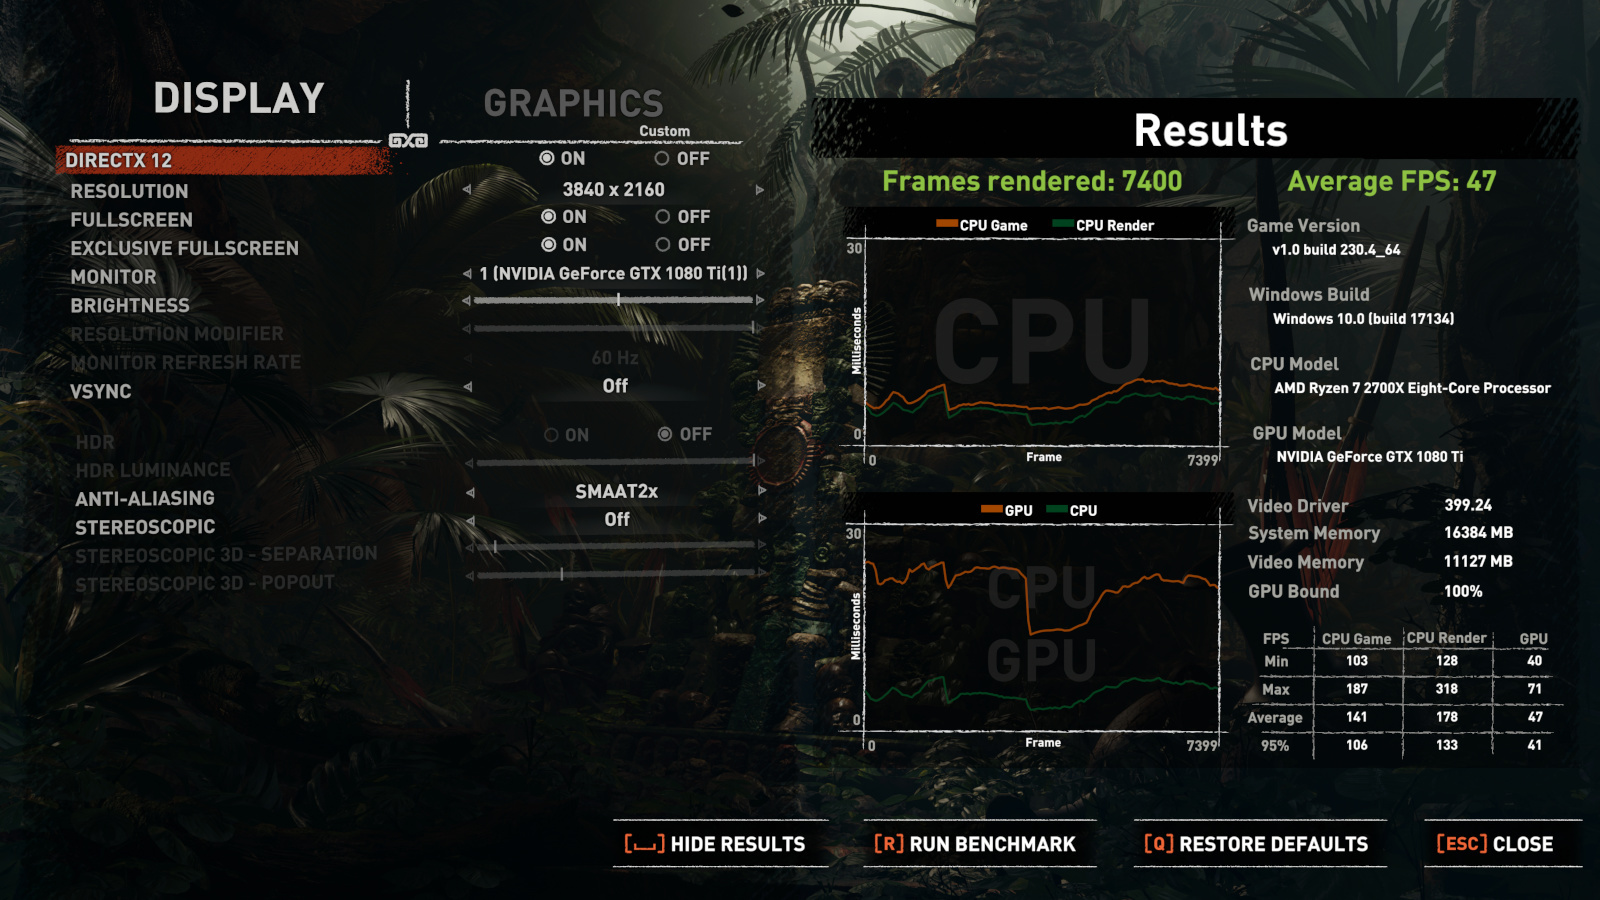 NVIDIA GeForce RTX 2080Ti may be able to run Shadow of the Tomb